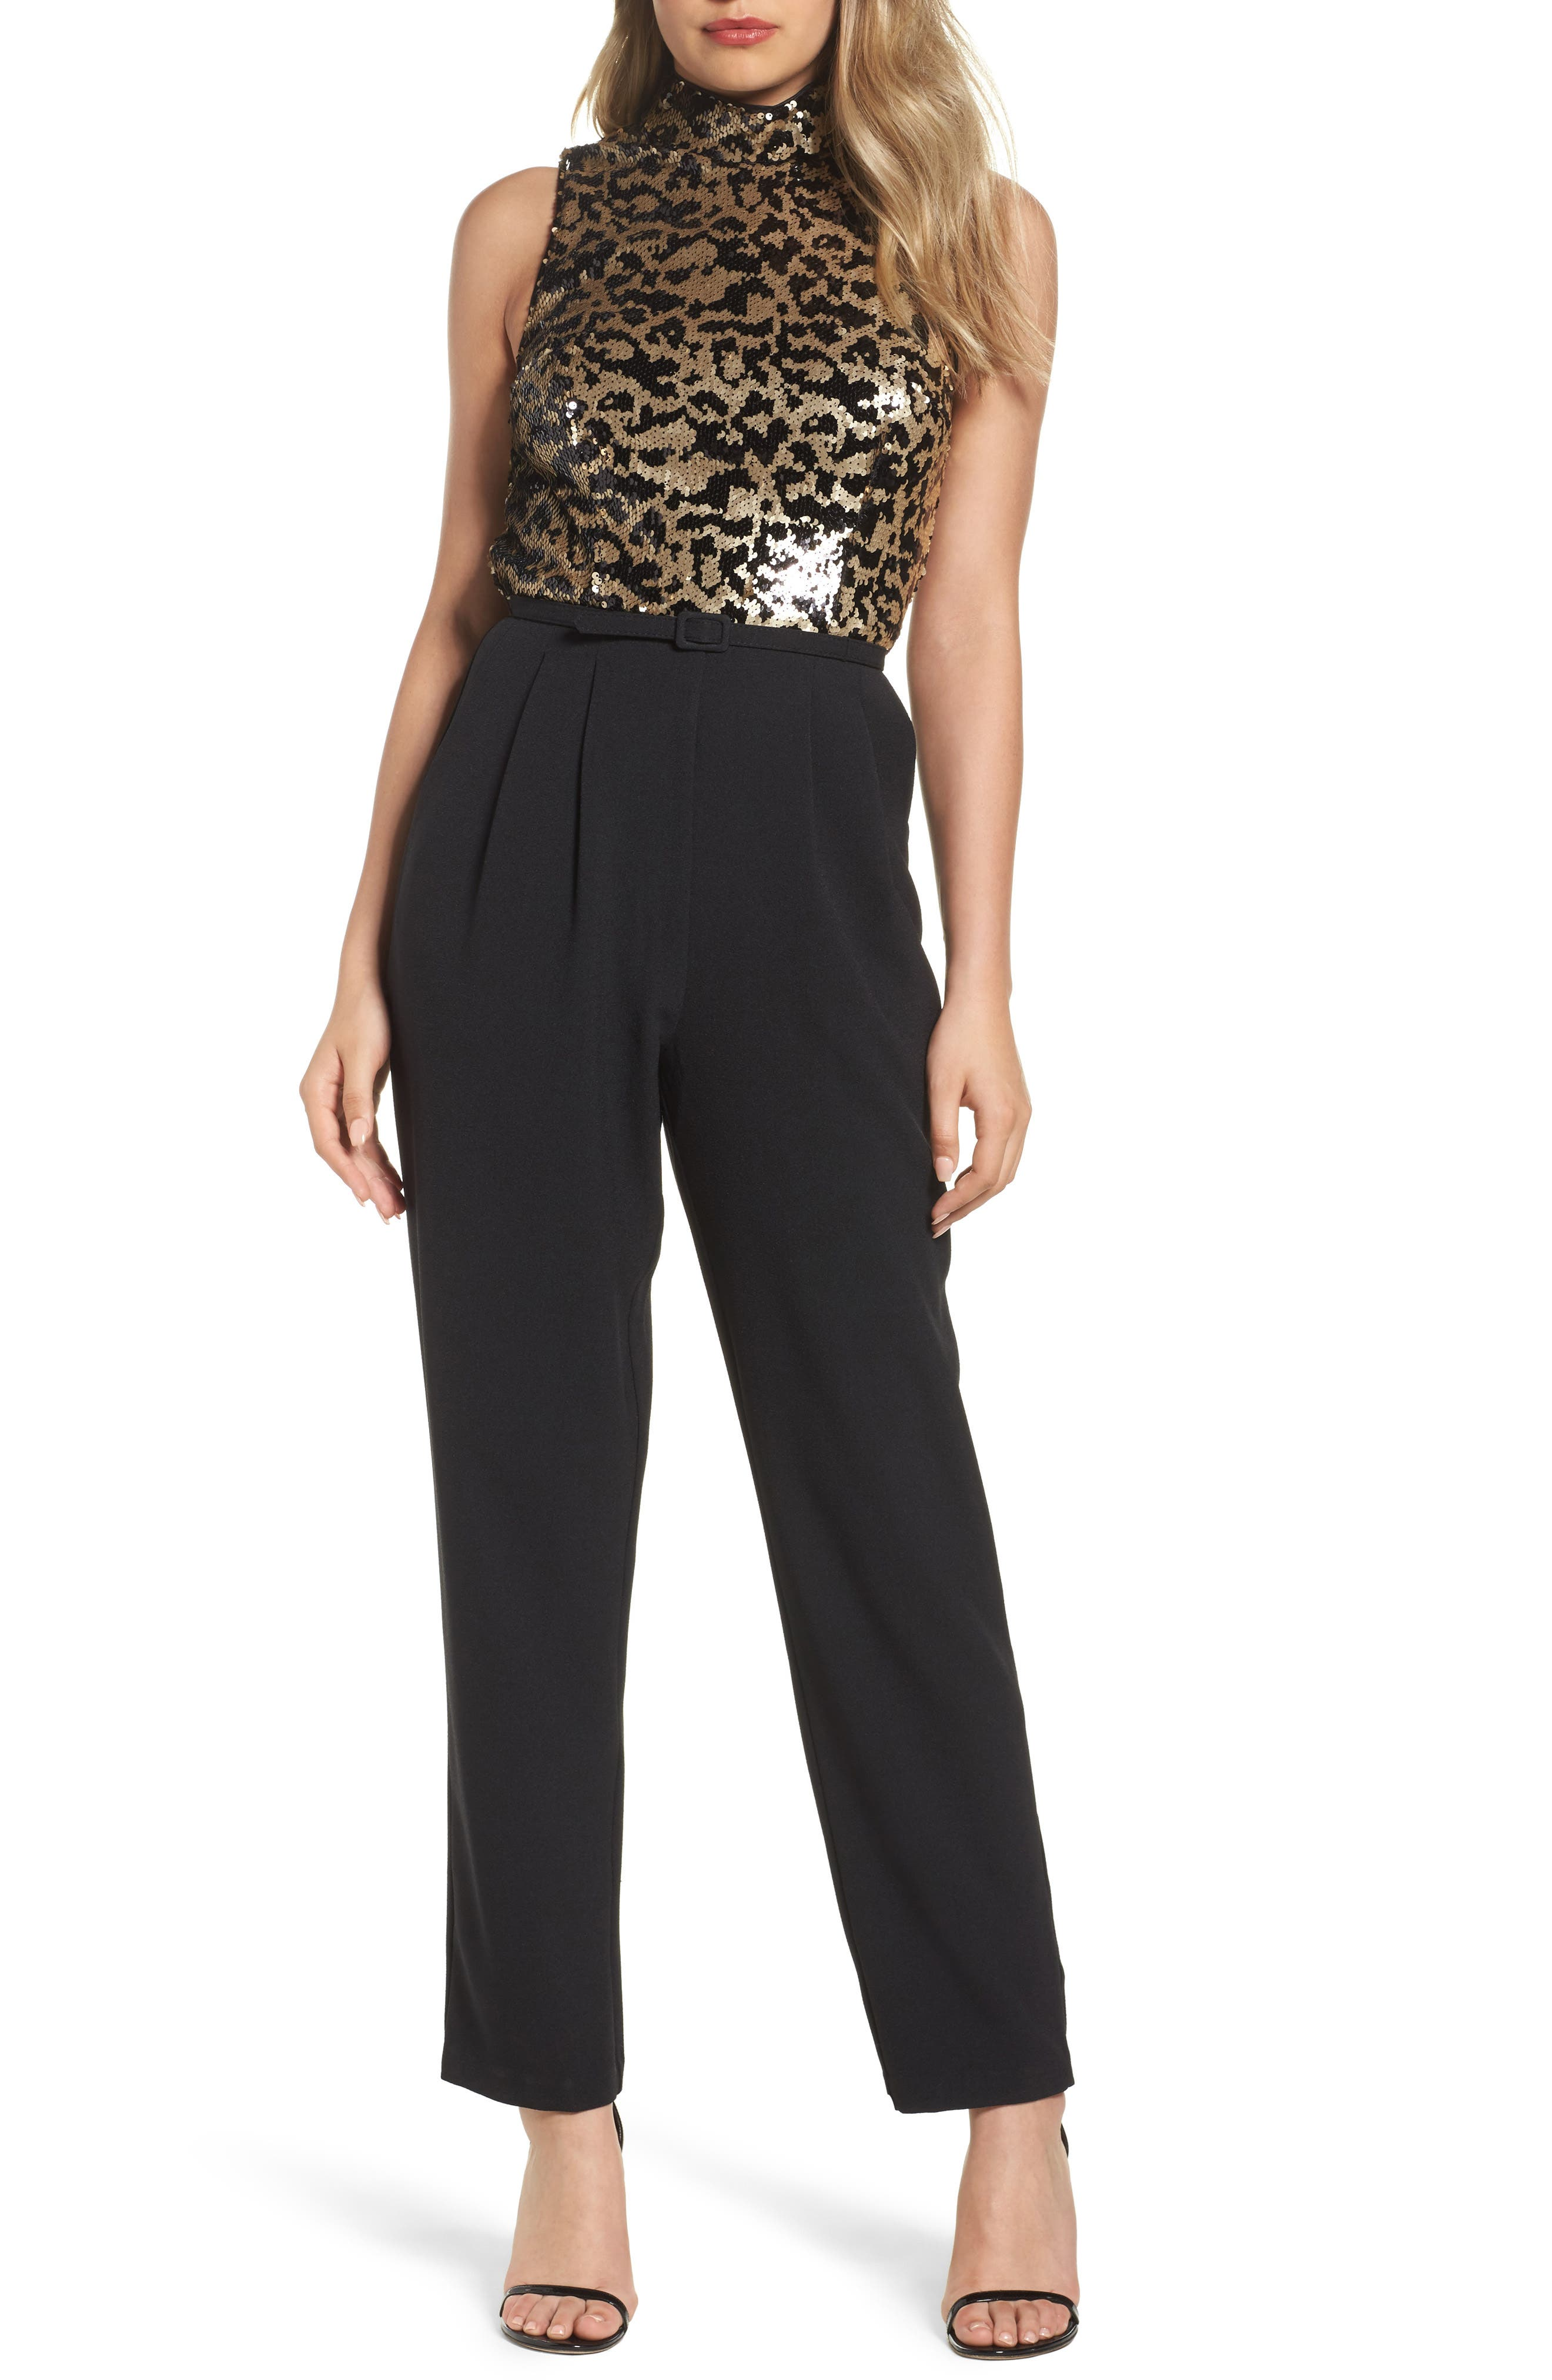 Main Image - Vince Camuto Sequin Leopard Bodice Belted Jumpsuit